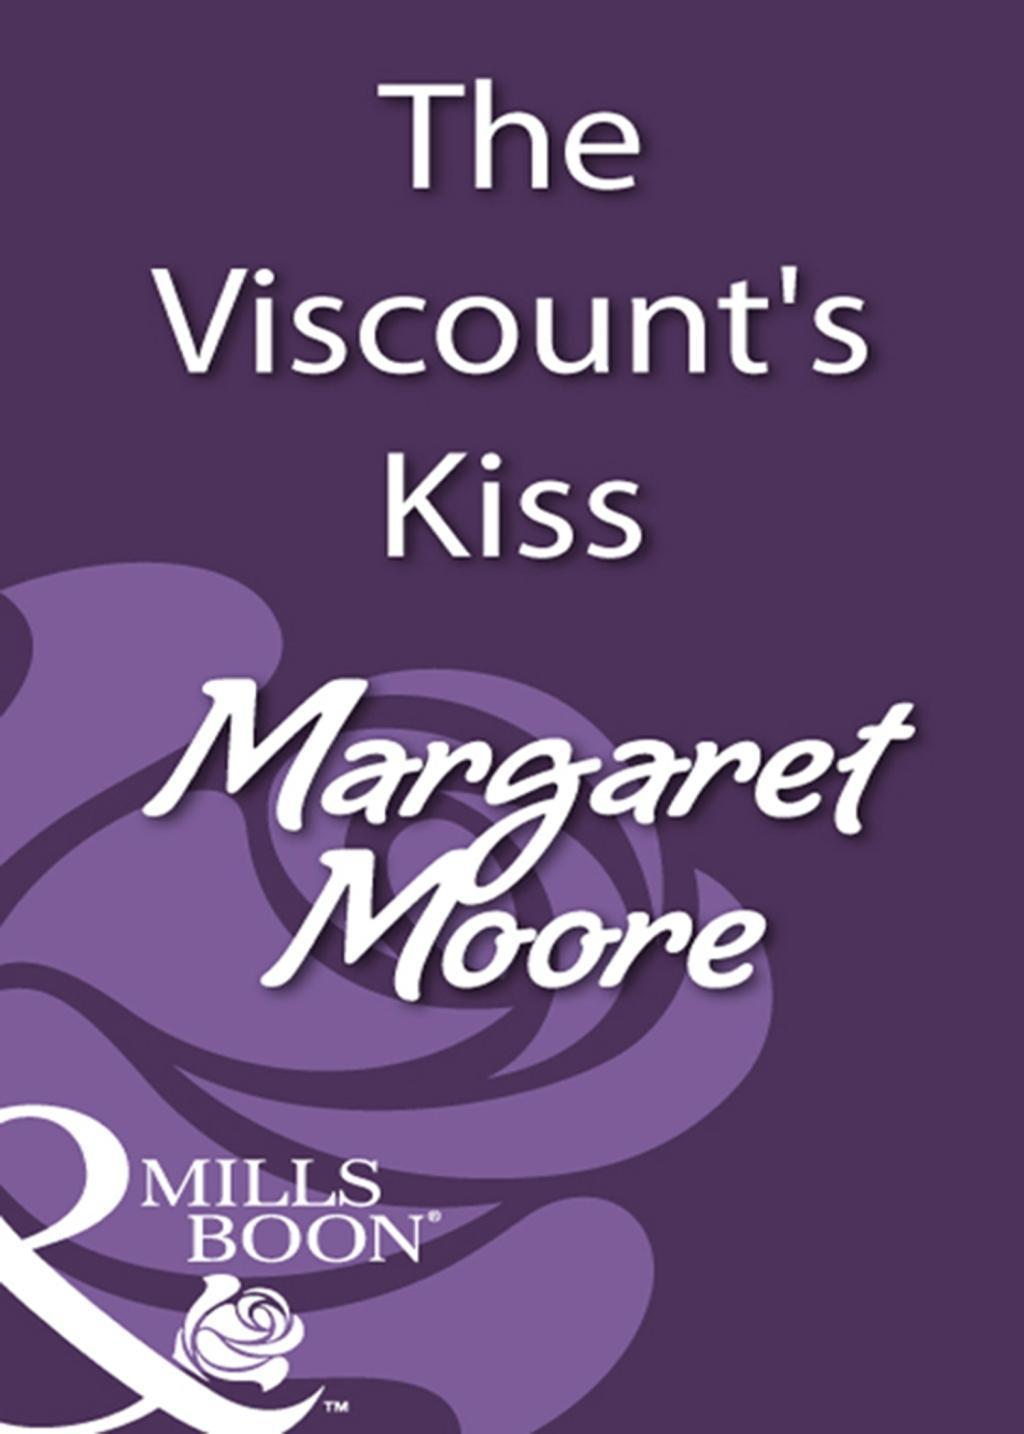 The Viscount's Kiss (Mills & Boon Historical)